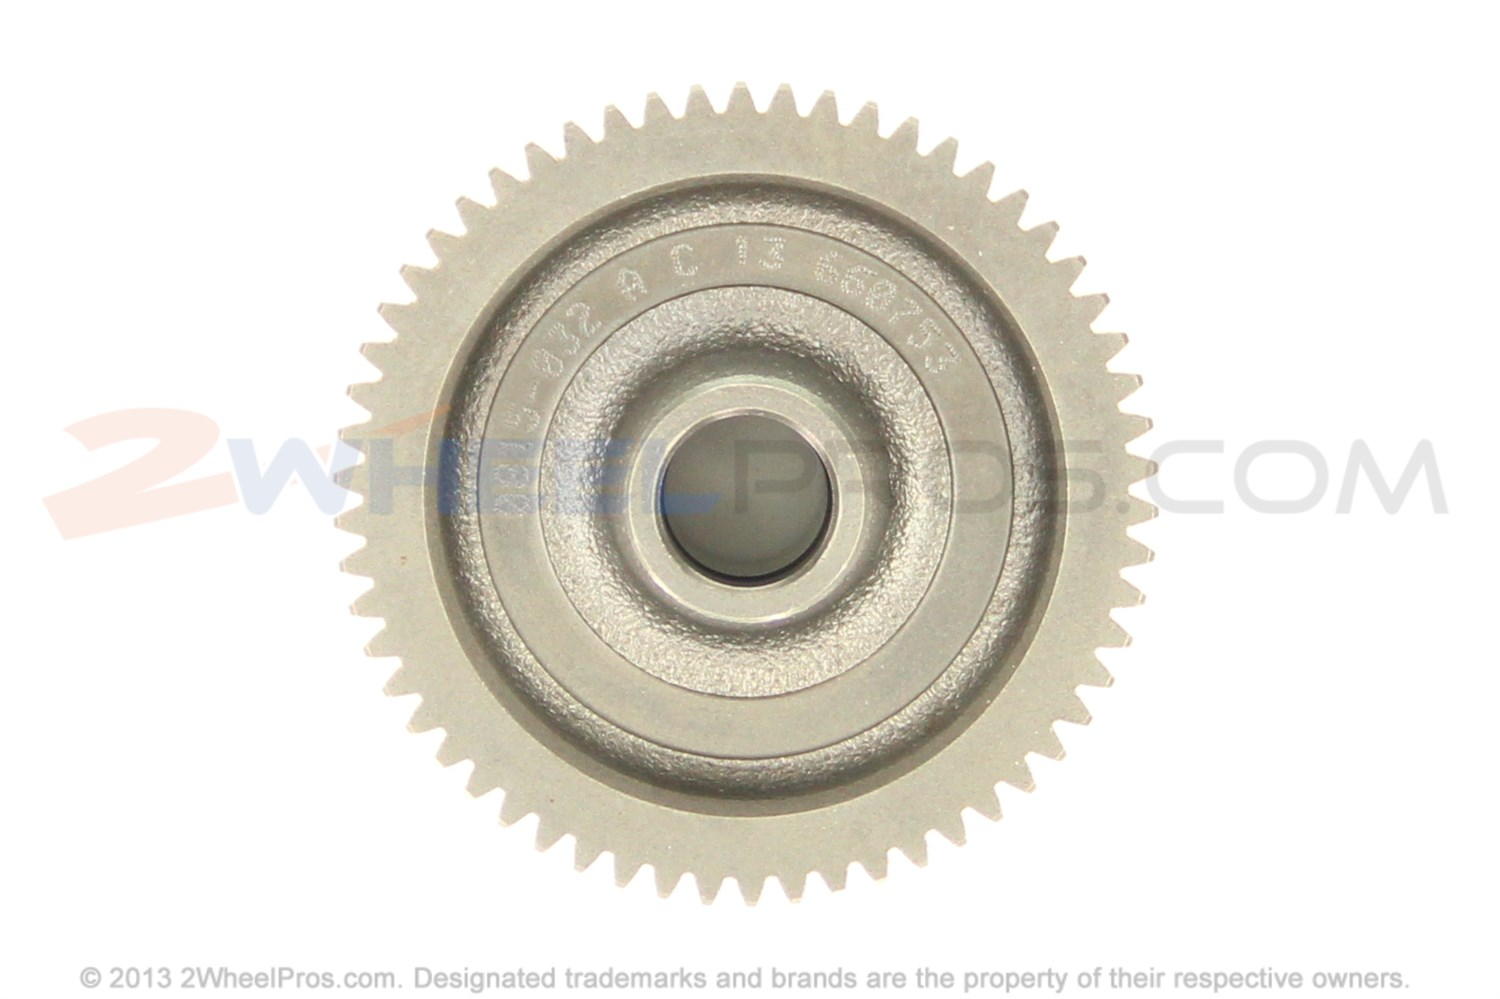 27t Engine Diagram Starter Clutch Assembly Replacement Parts For 2014 Arctic